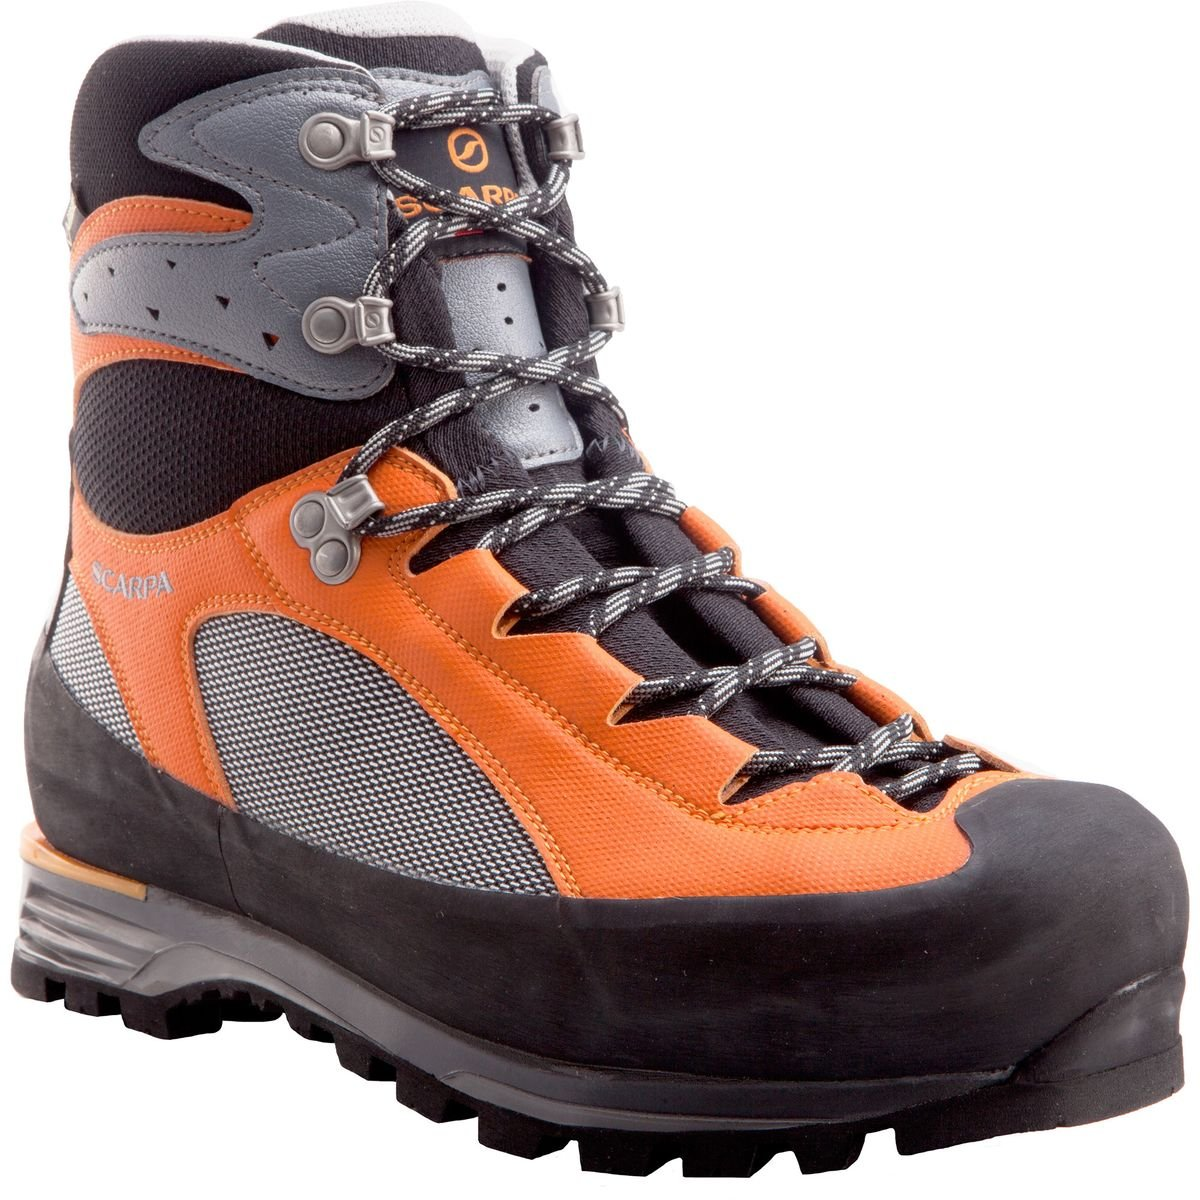 SCARPA Men's CHARMOZ Mountaineering Boot, Shark/Orange, 40.5 EU/7.666666666666667 M US by SCARPA